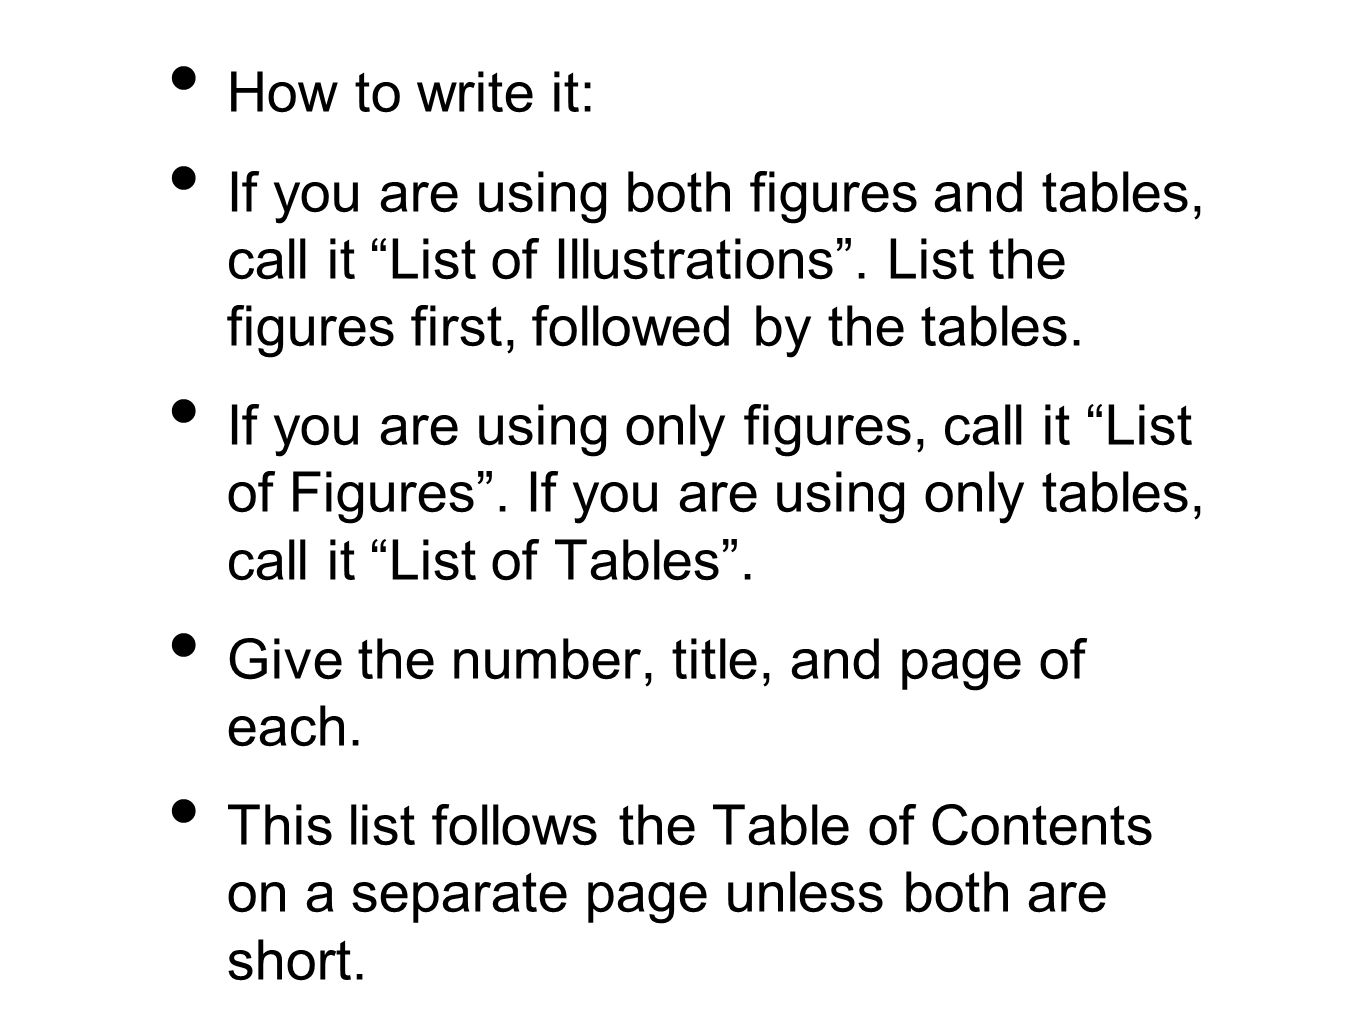 How to write it: If you are using both figures and tables, call it List of Illustrations . List the figures first, followed by the tables.